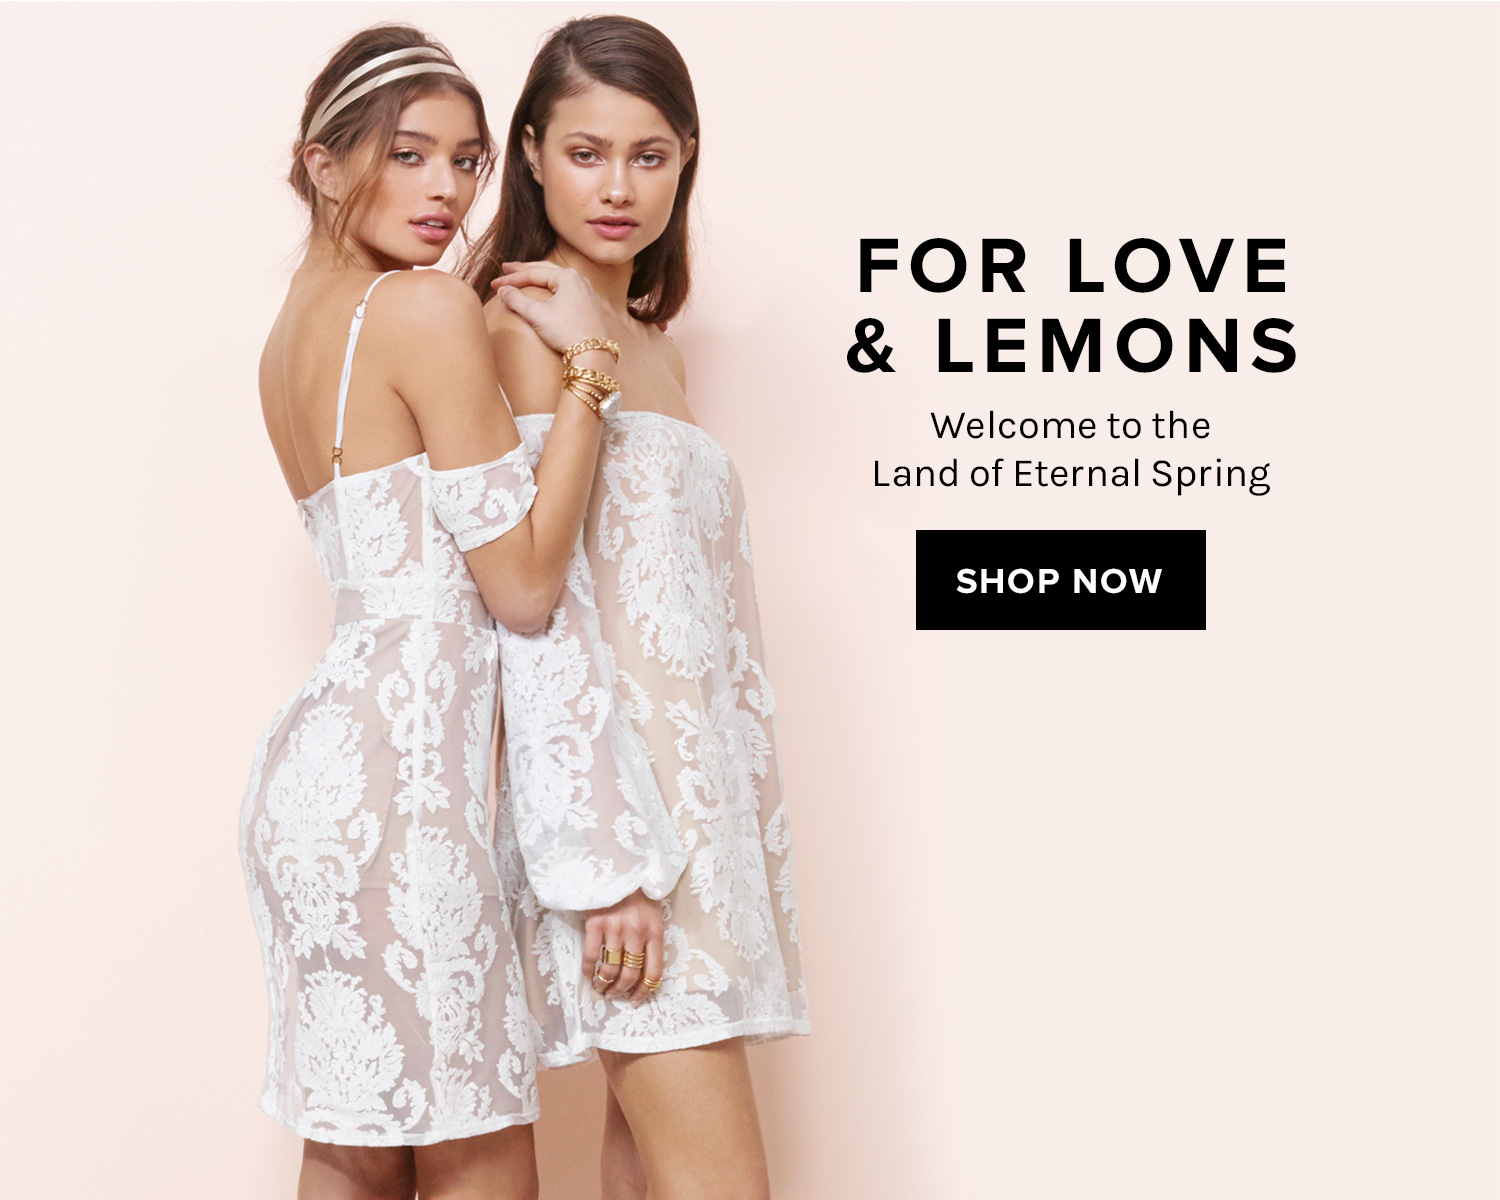 FOR LOVE & LEMONS: Welcome to the Land of Eternal Spring. SHOP NOW!